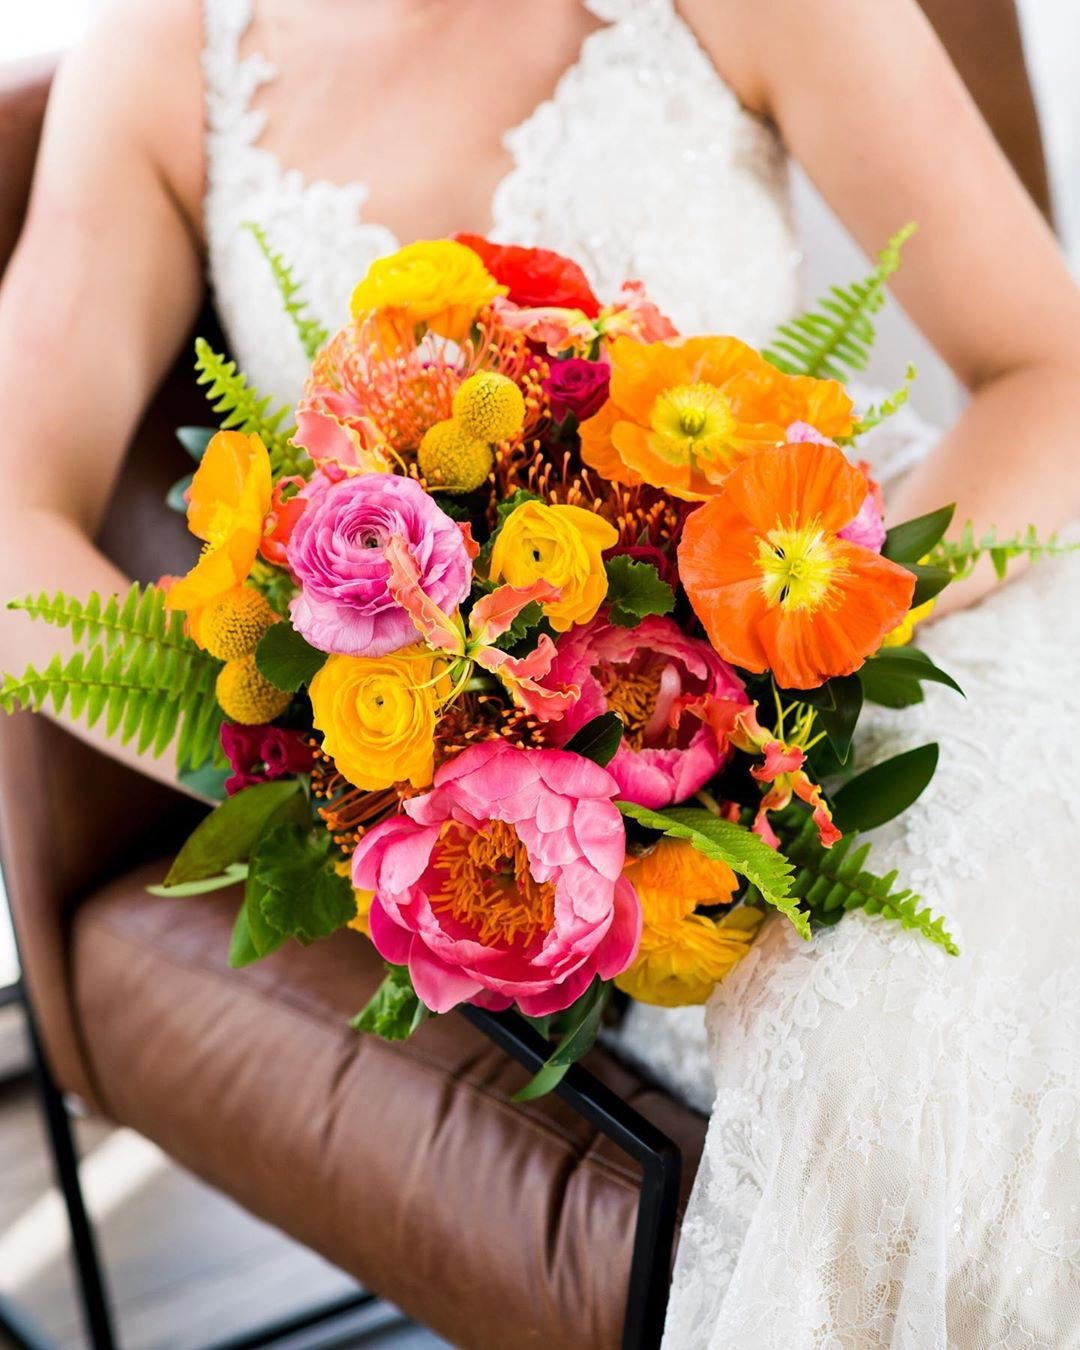 wedding colors yellow orange flowers bouquet